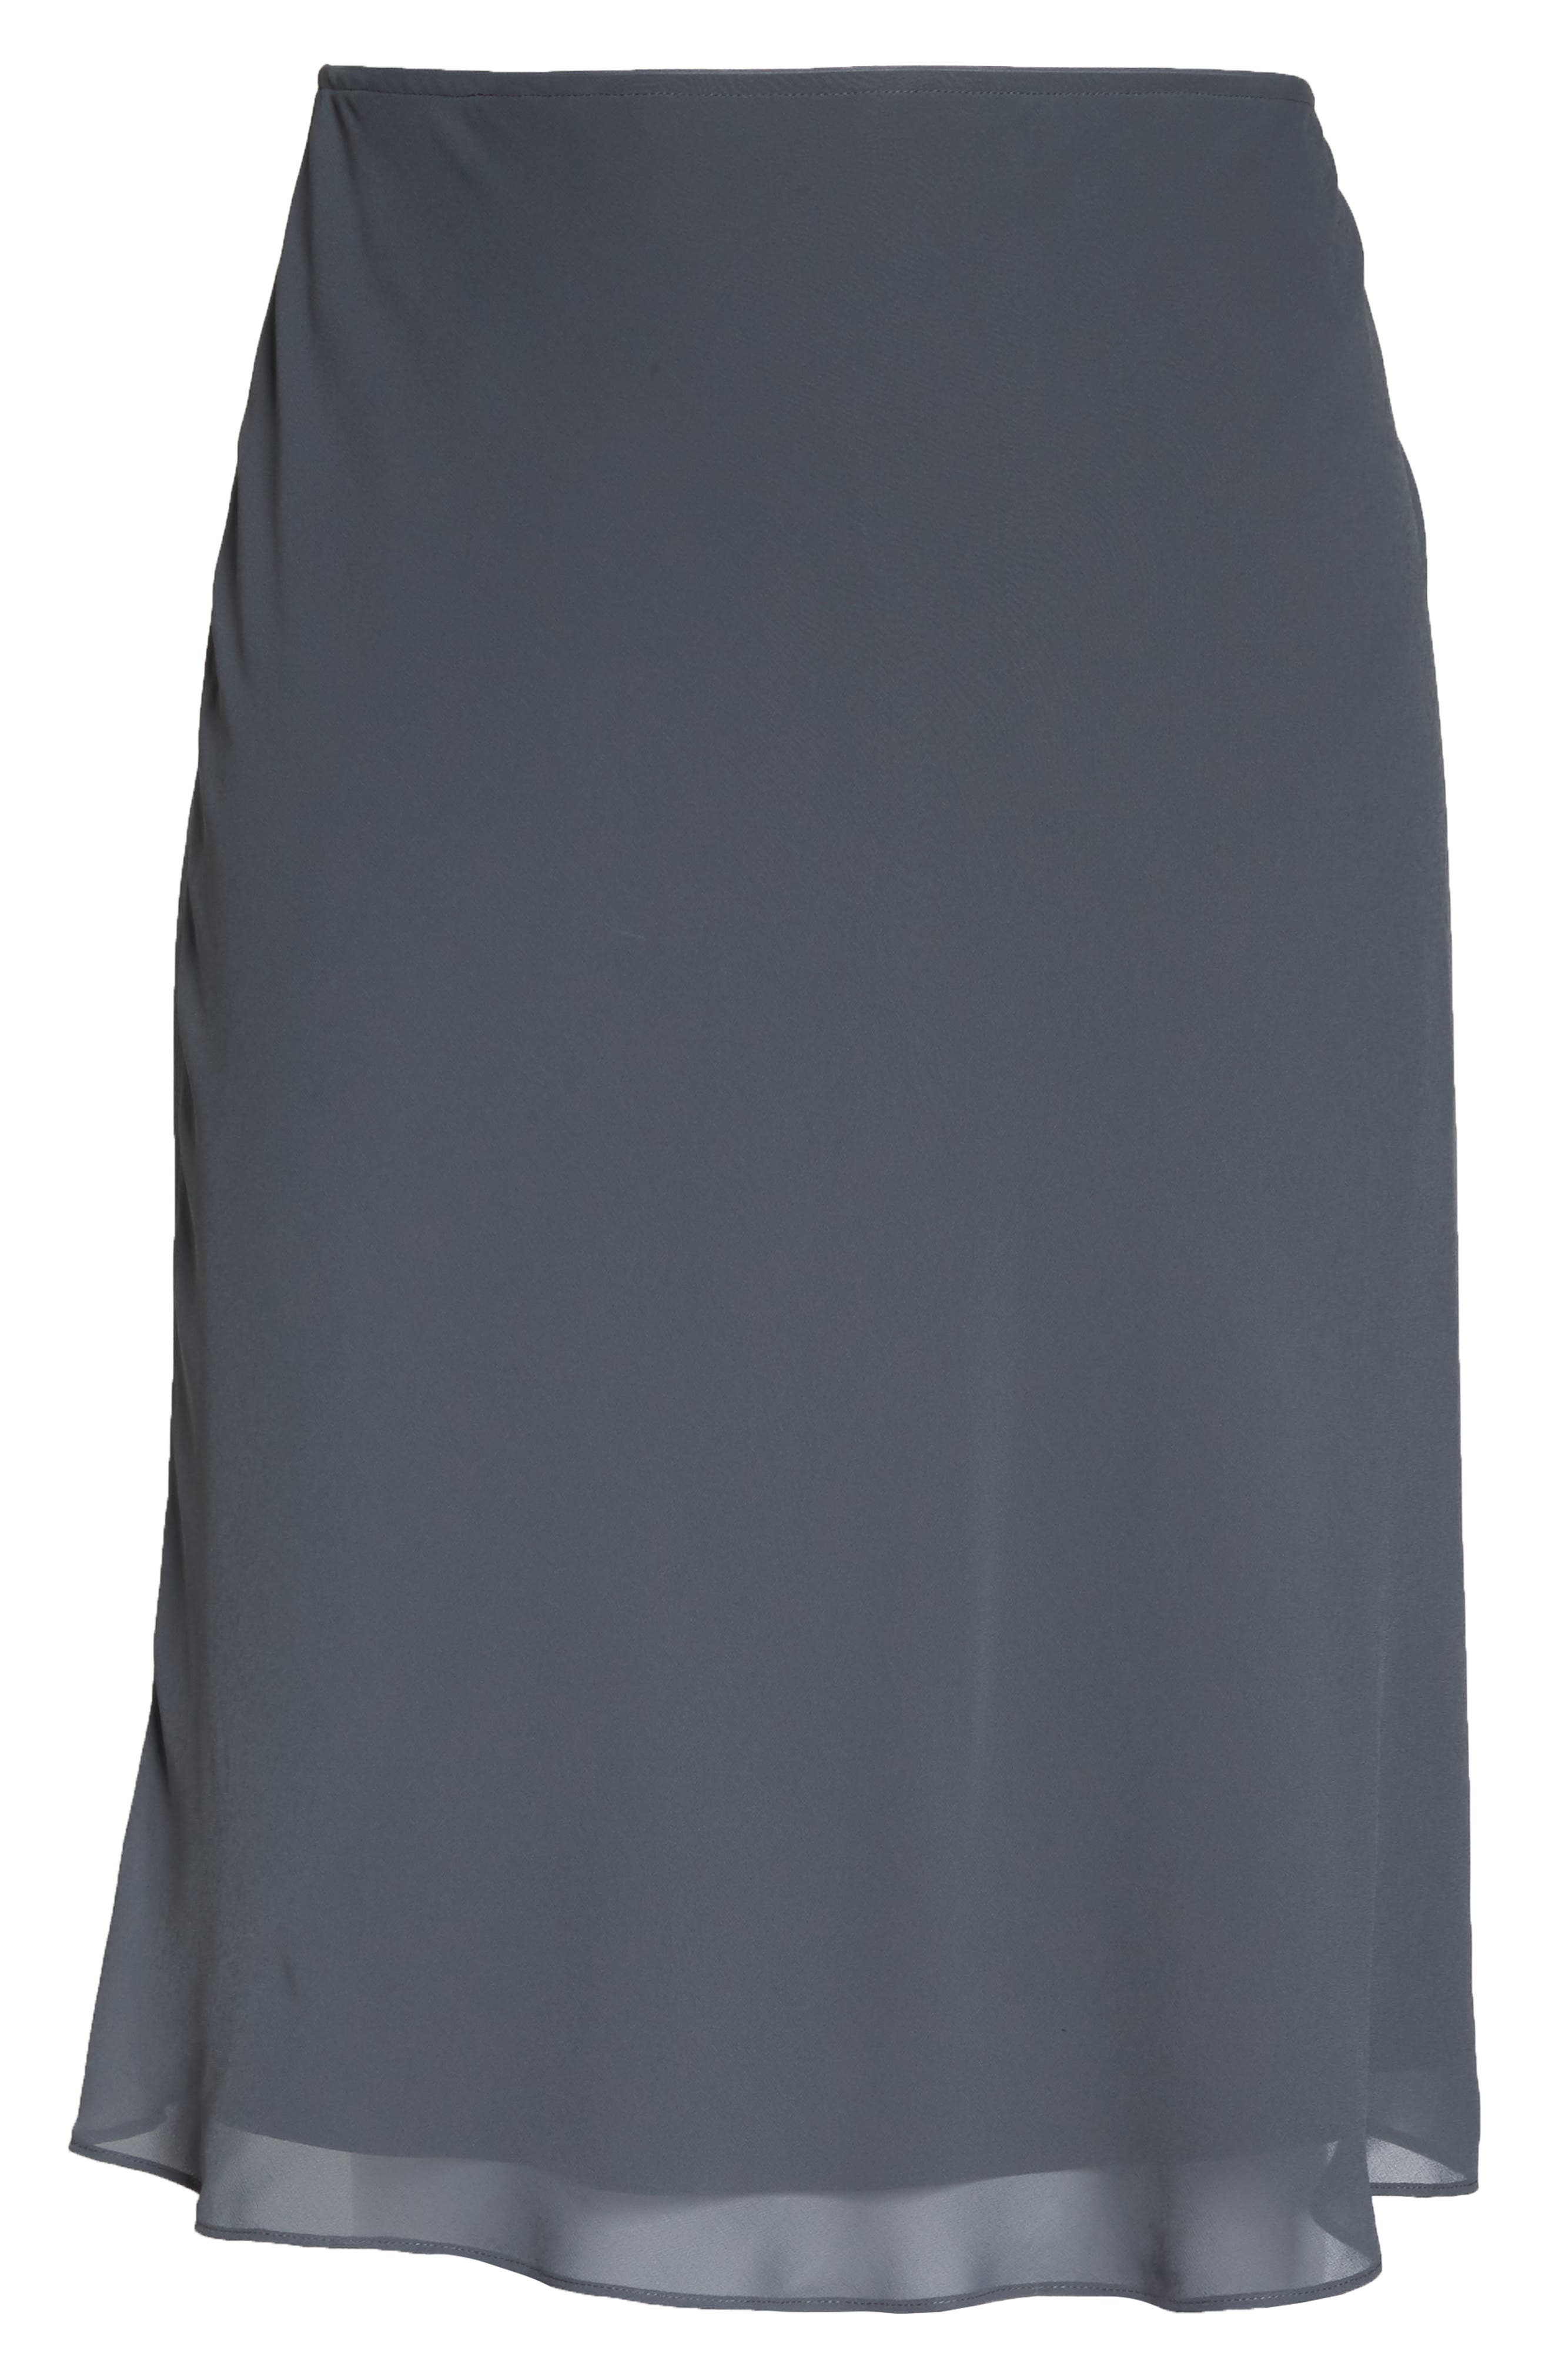 Paired Up Chiffon Skirt,                             Alternate thumbnail 6, color,                             INK